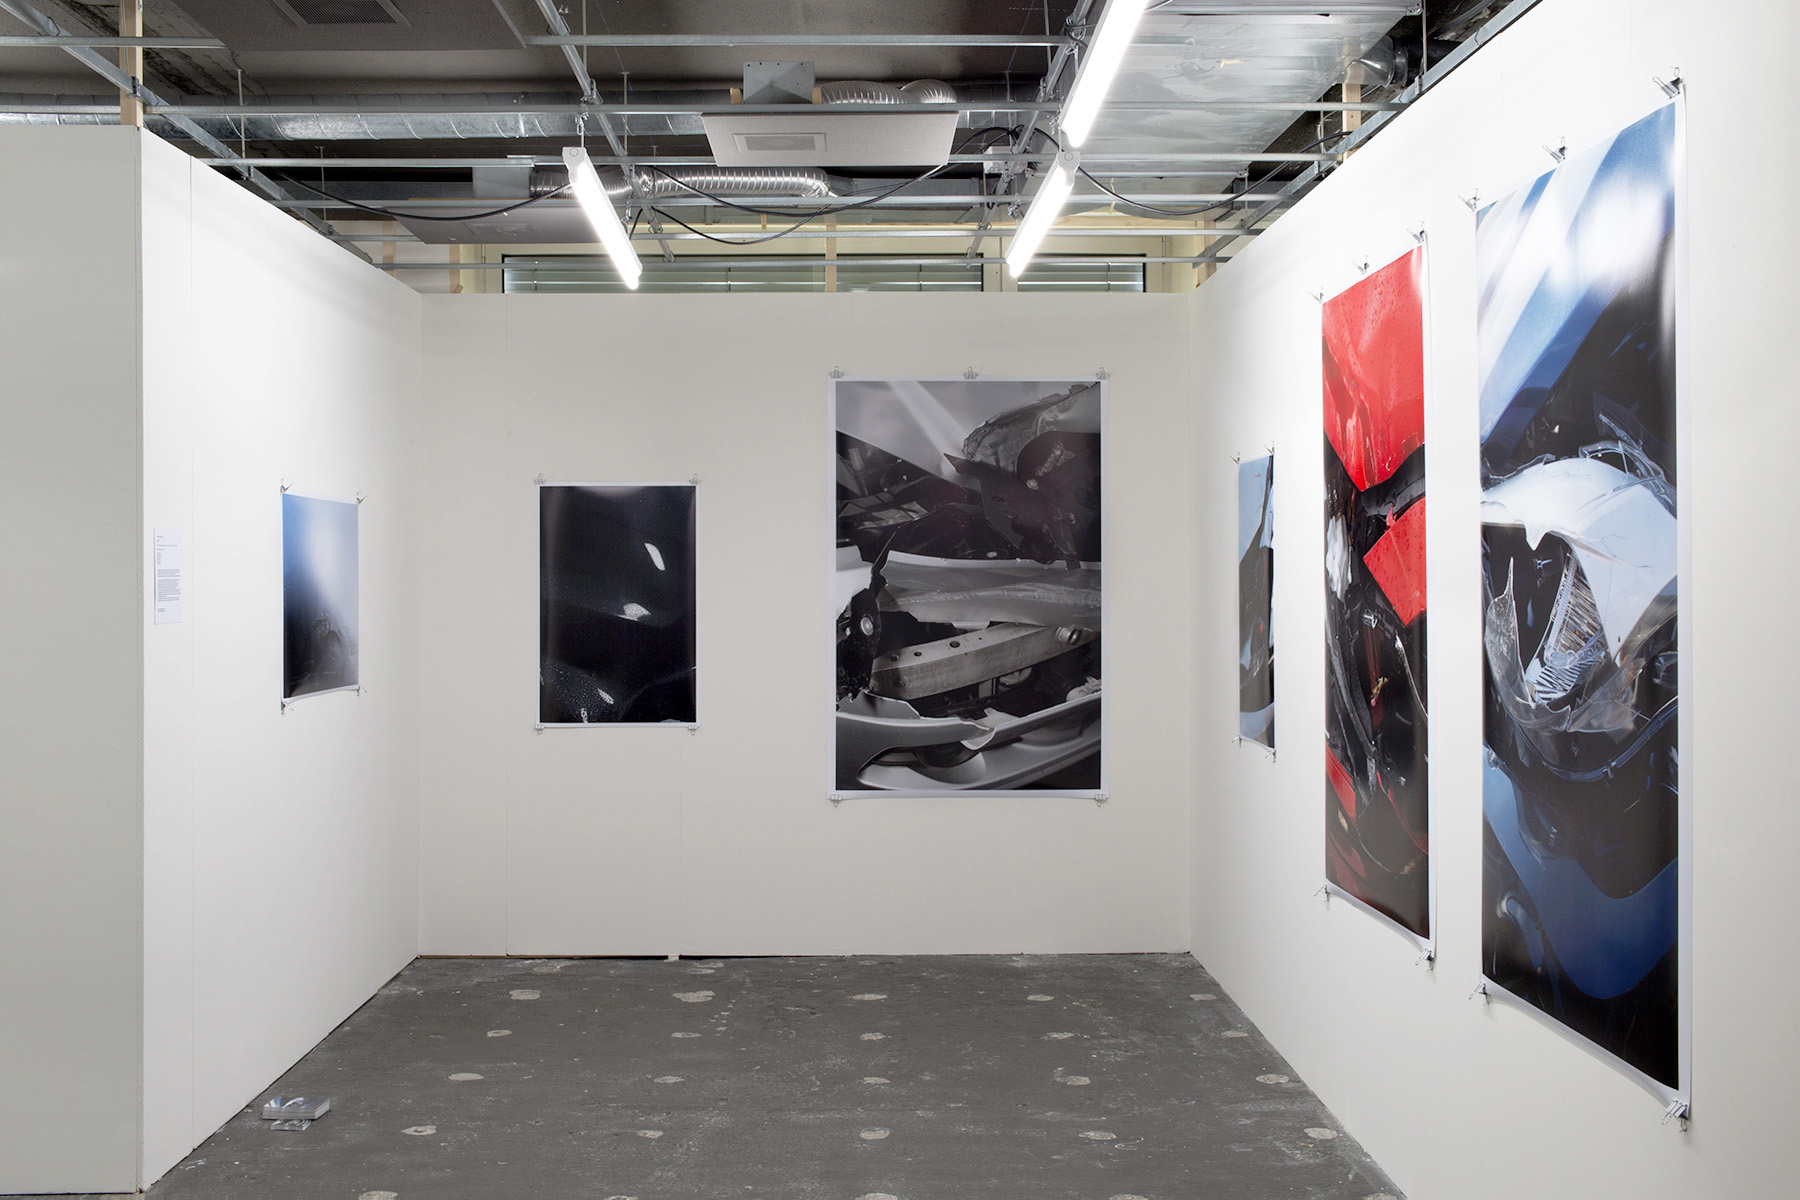 Chris Drange, Christoph David Drange, Shape Shifter, AVIATOR, PHANTOM, PALLADIUM, SLATE II, MISANO,  KOBALT, Crash Installation view, Photo Bastei, exhibition